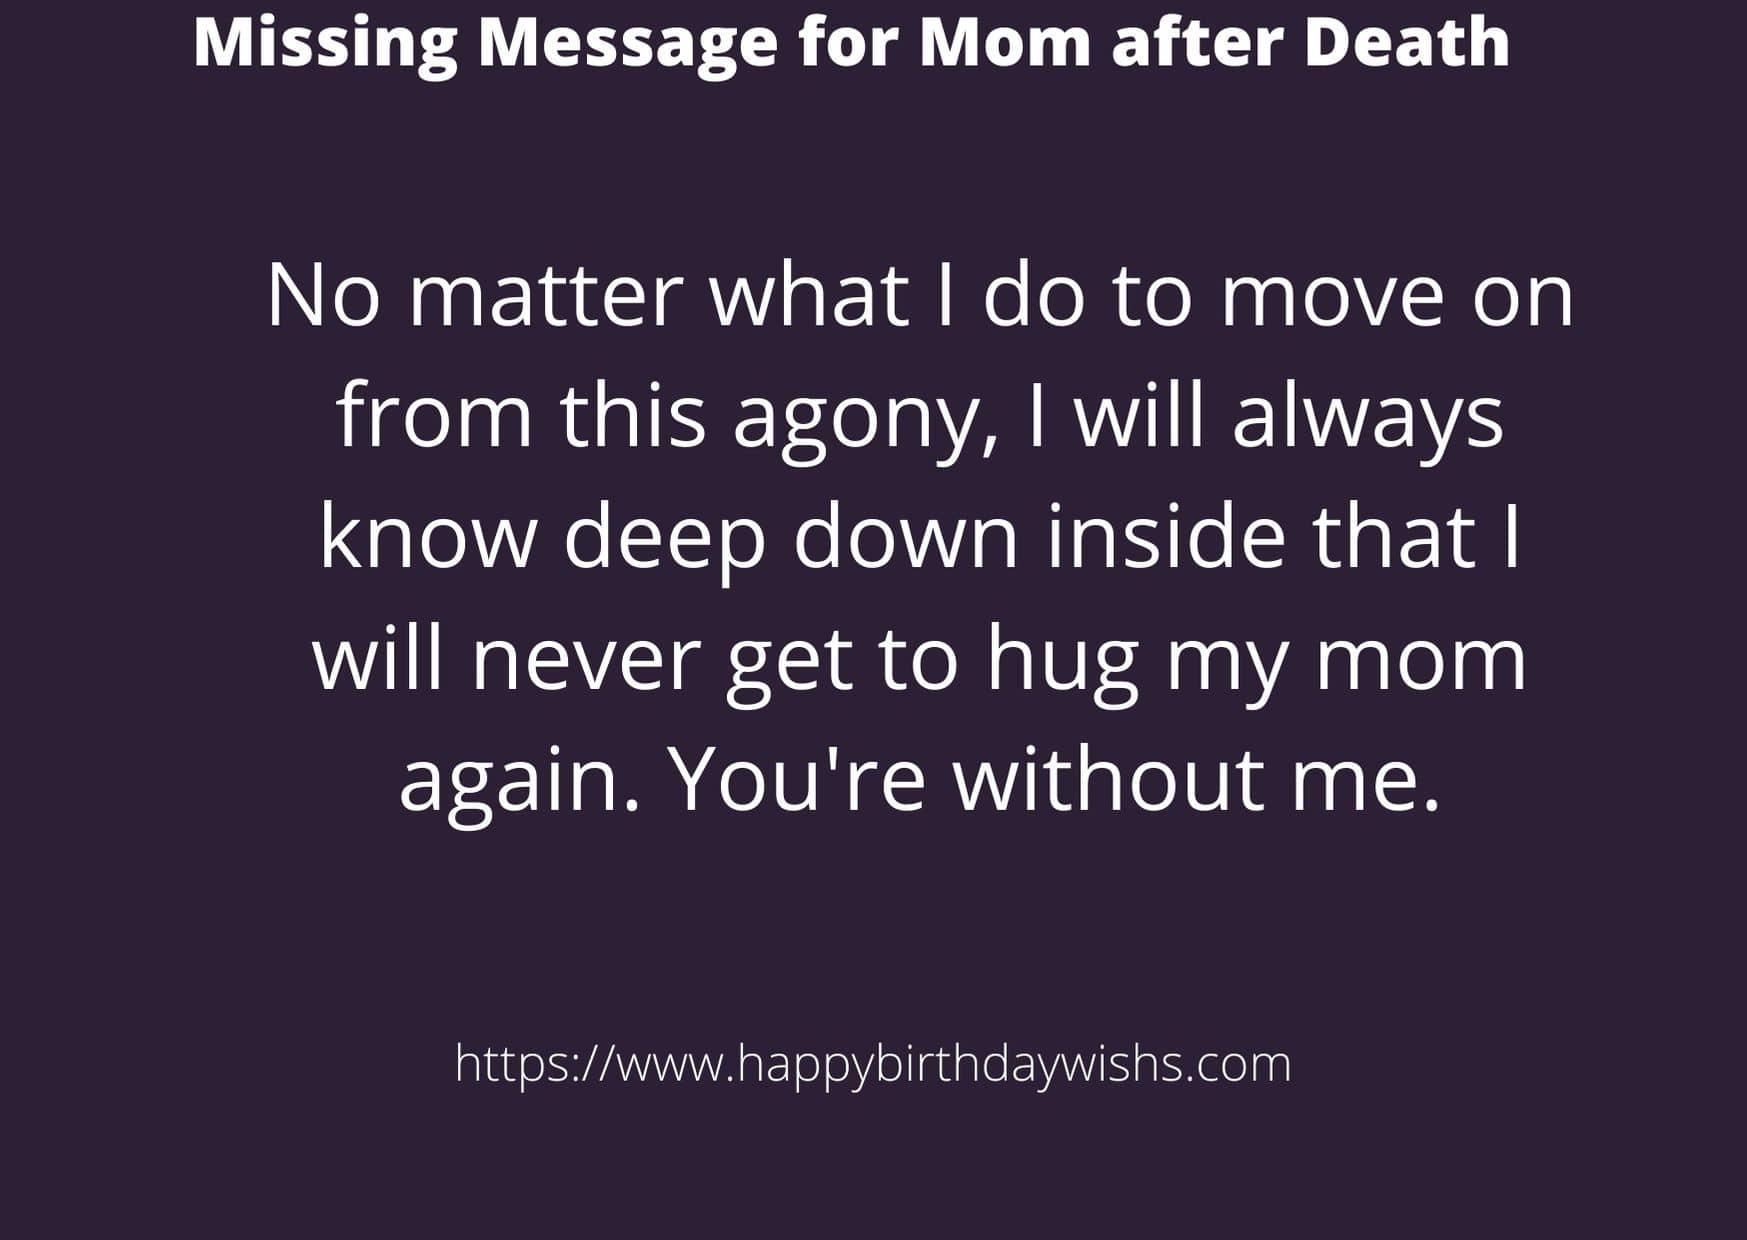 Message for mother after death